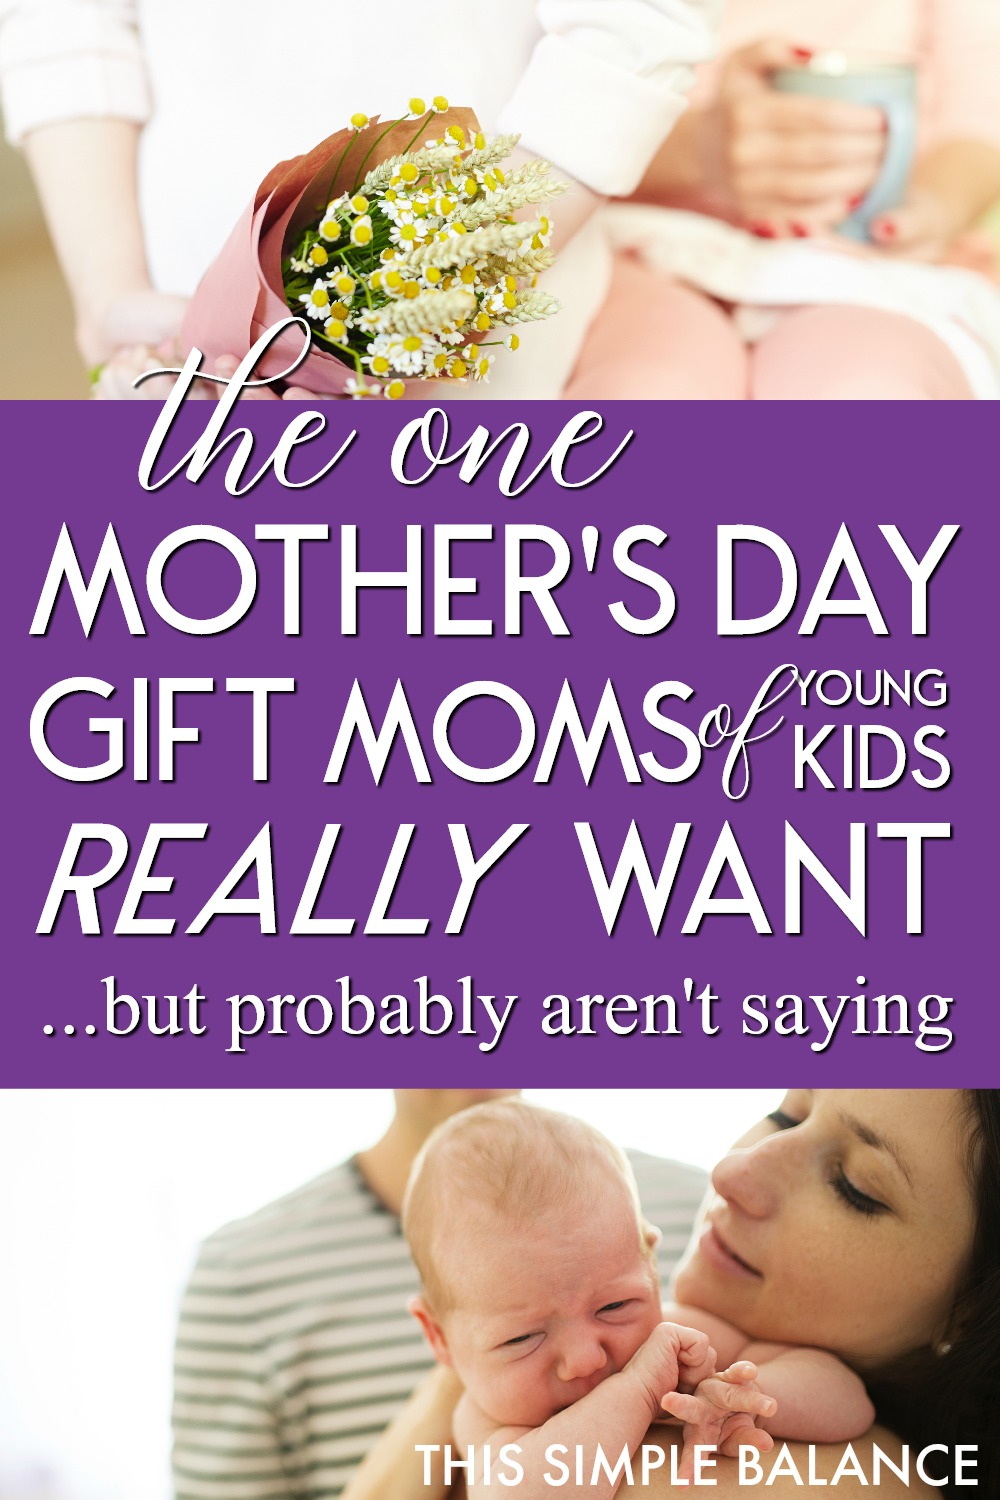 The One Mother's Day Gift Moms Actually Want During the Little Years (but probably aren't saying)